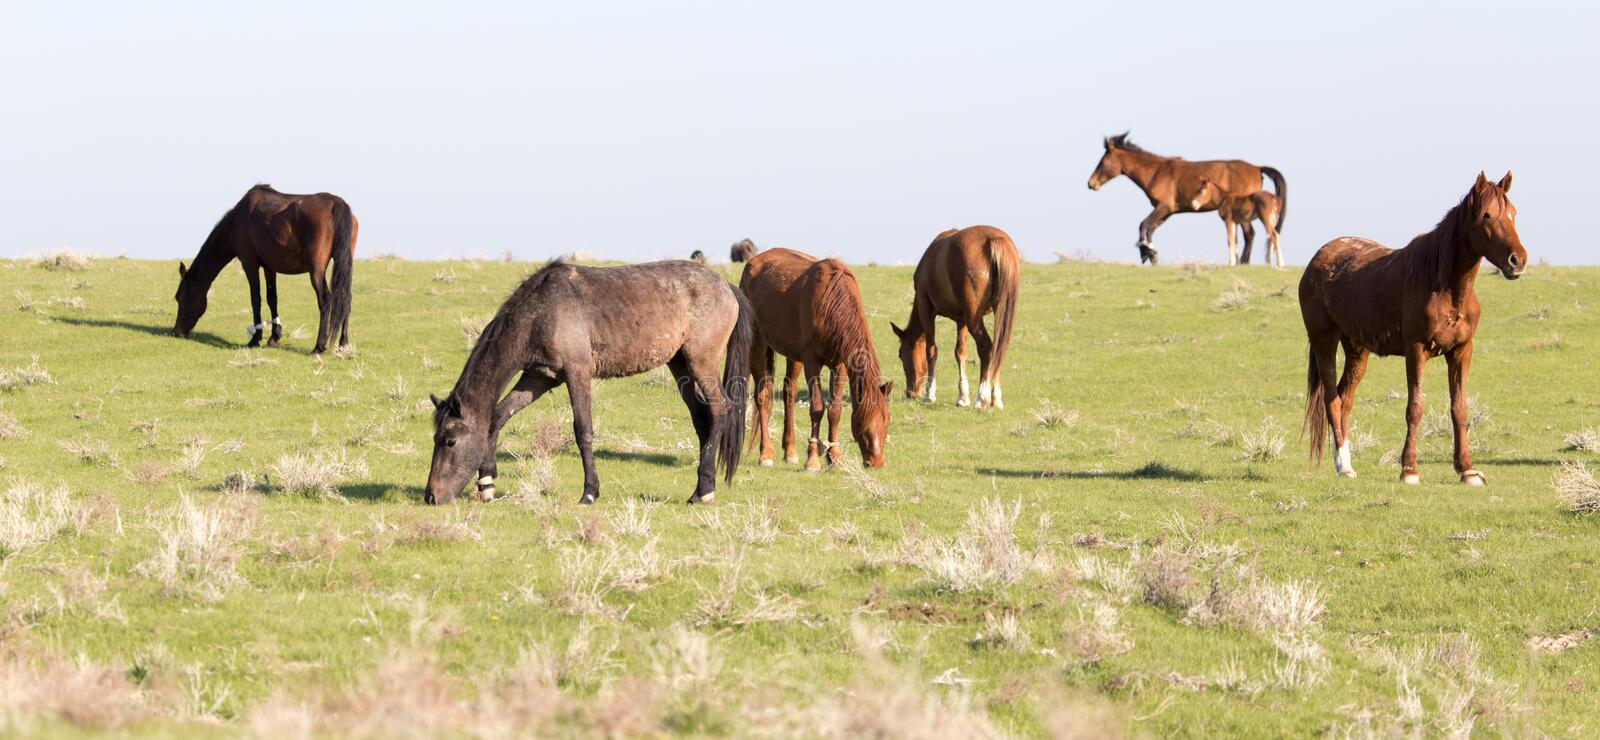 Horses in pasture on nature royalty free stock images